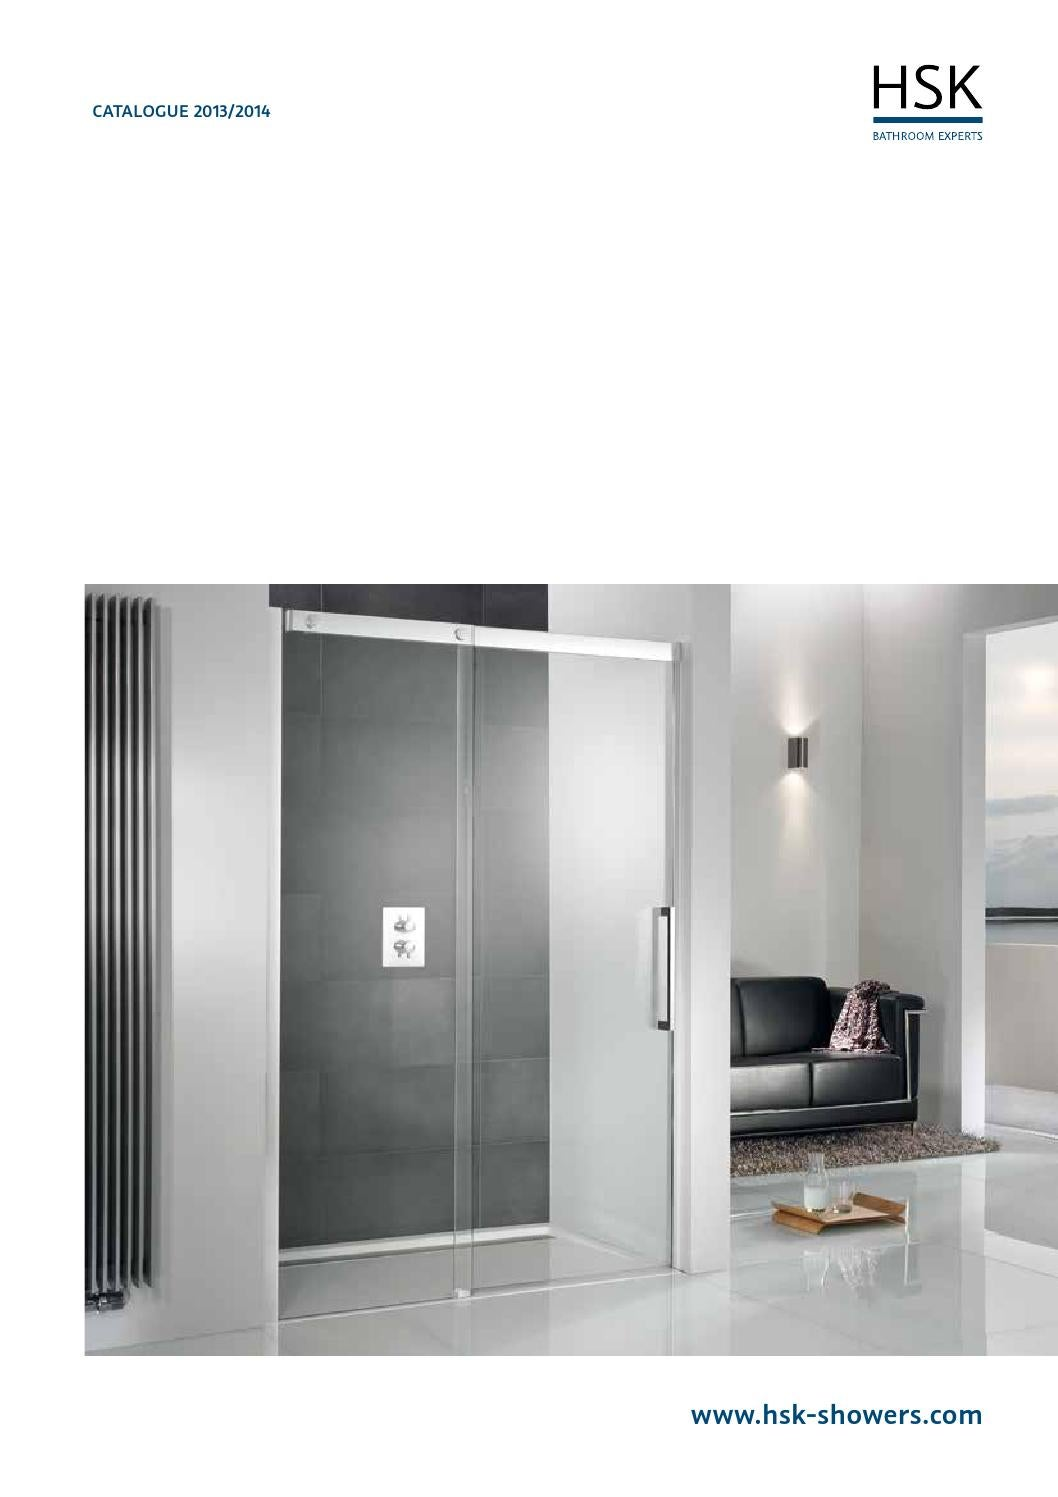 Hsk Softcube Hsk 2013 2014 Brochure By Rubberduck Bathrooms Ltd Issuu